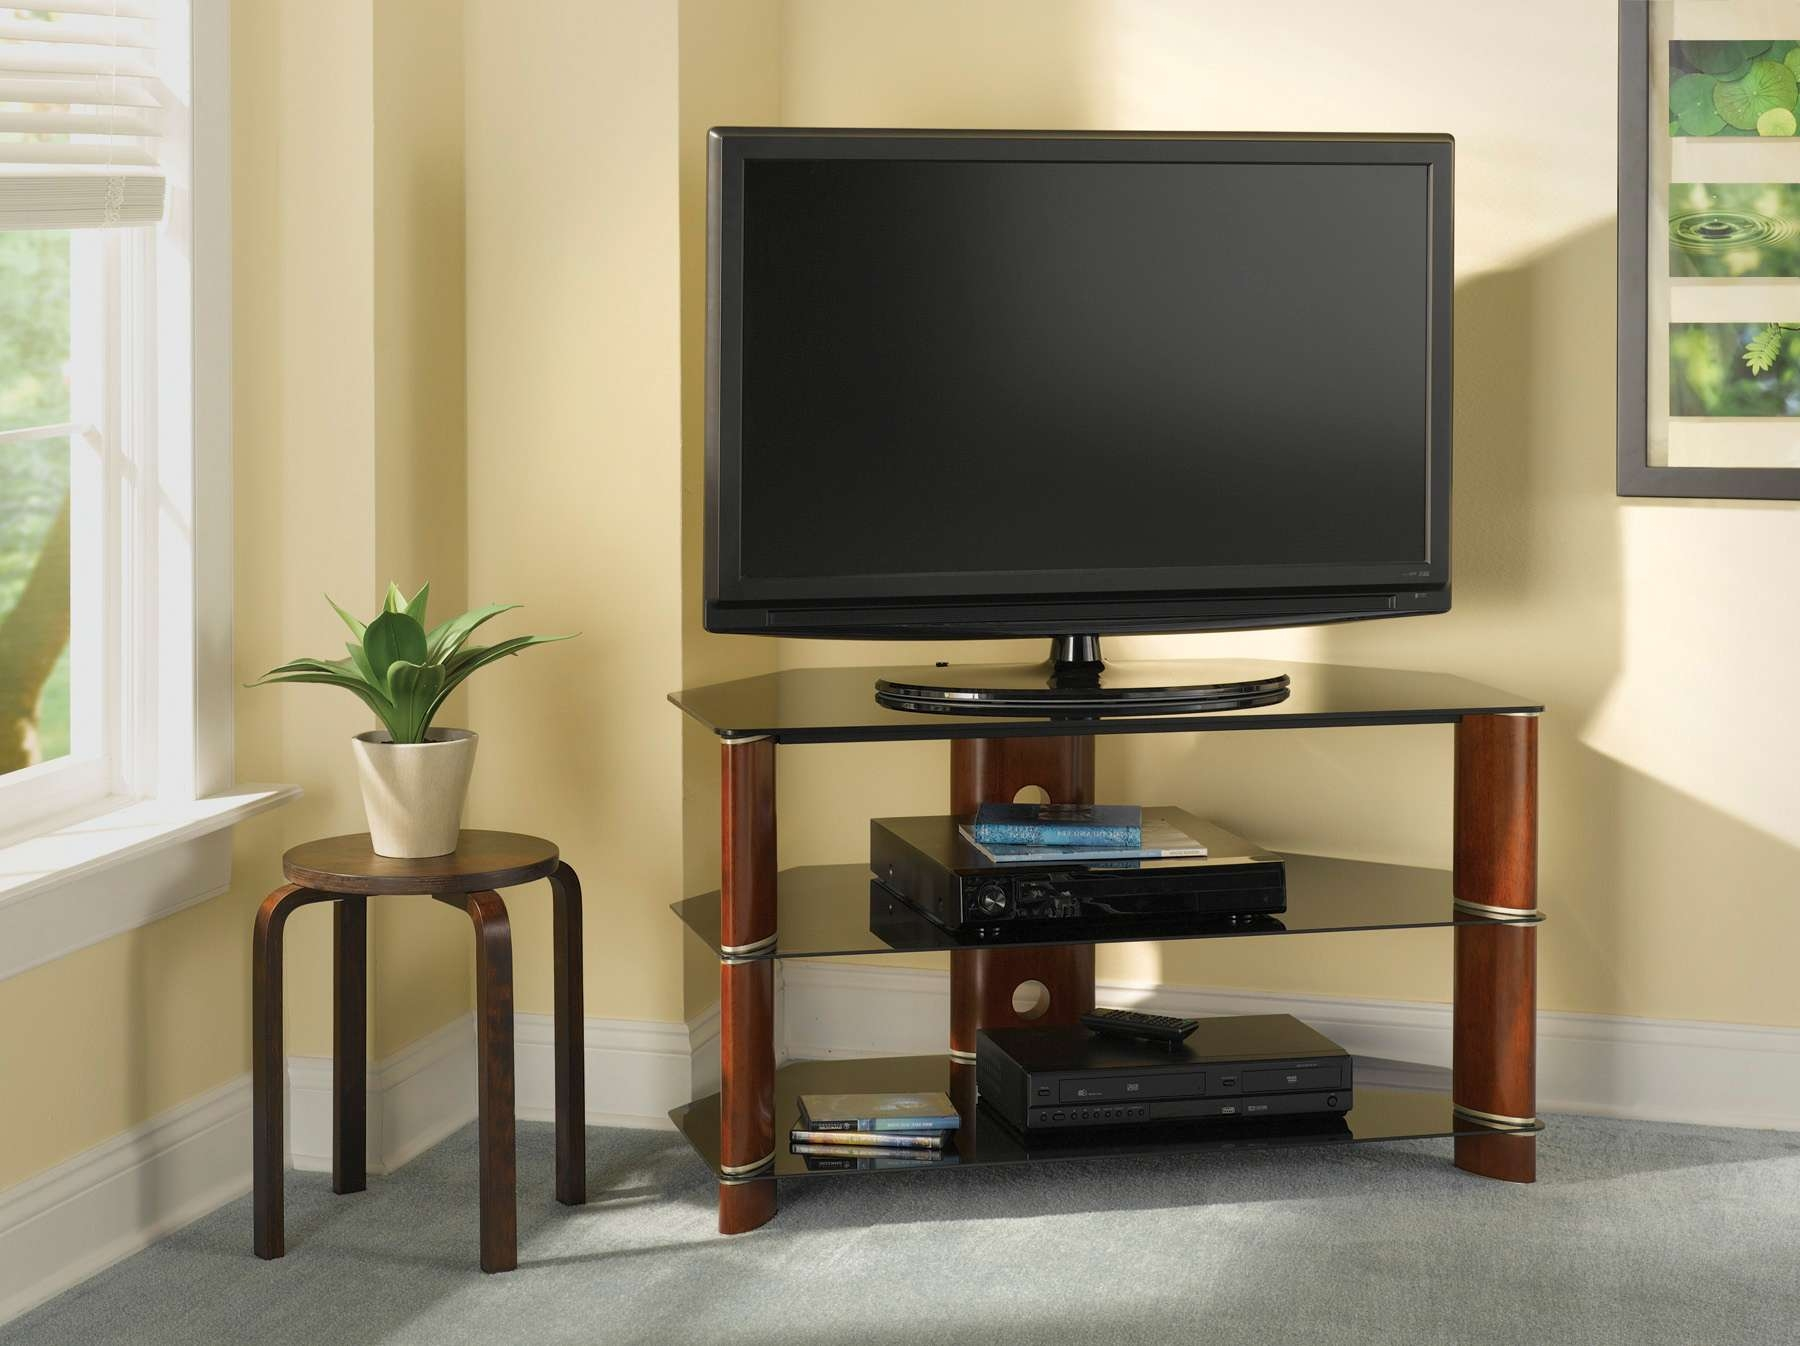 Outstanding Modern Corner Tv Stand And Contemporary Trends Images Inside Contemporary Corner Tv Stands (View 12 of 15)